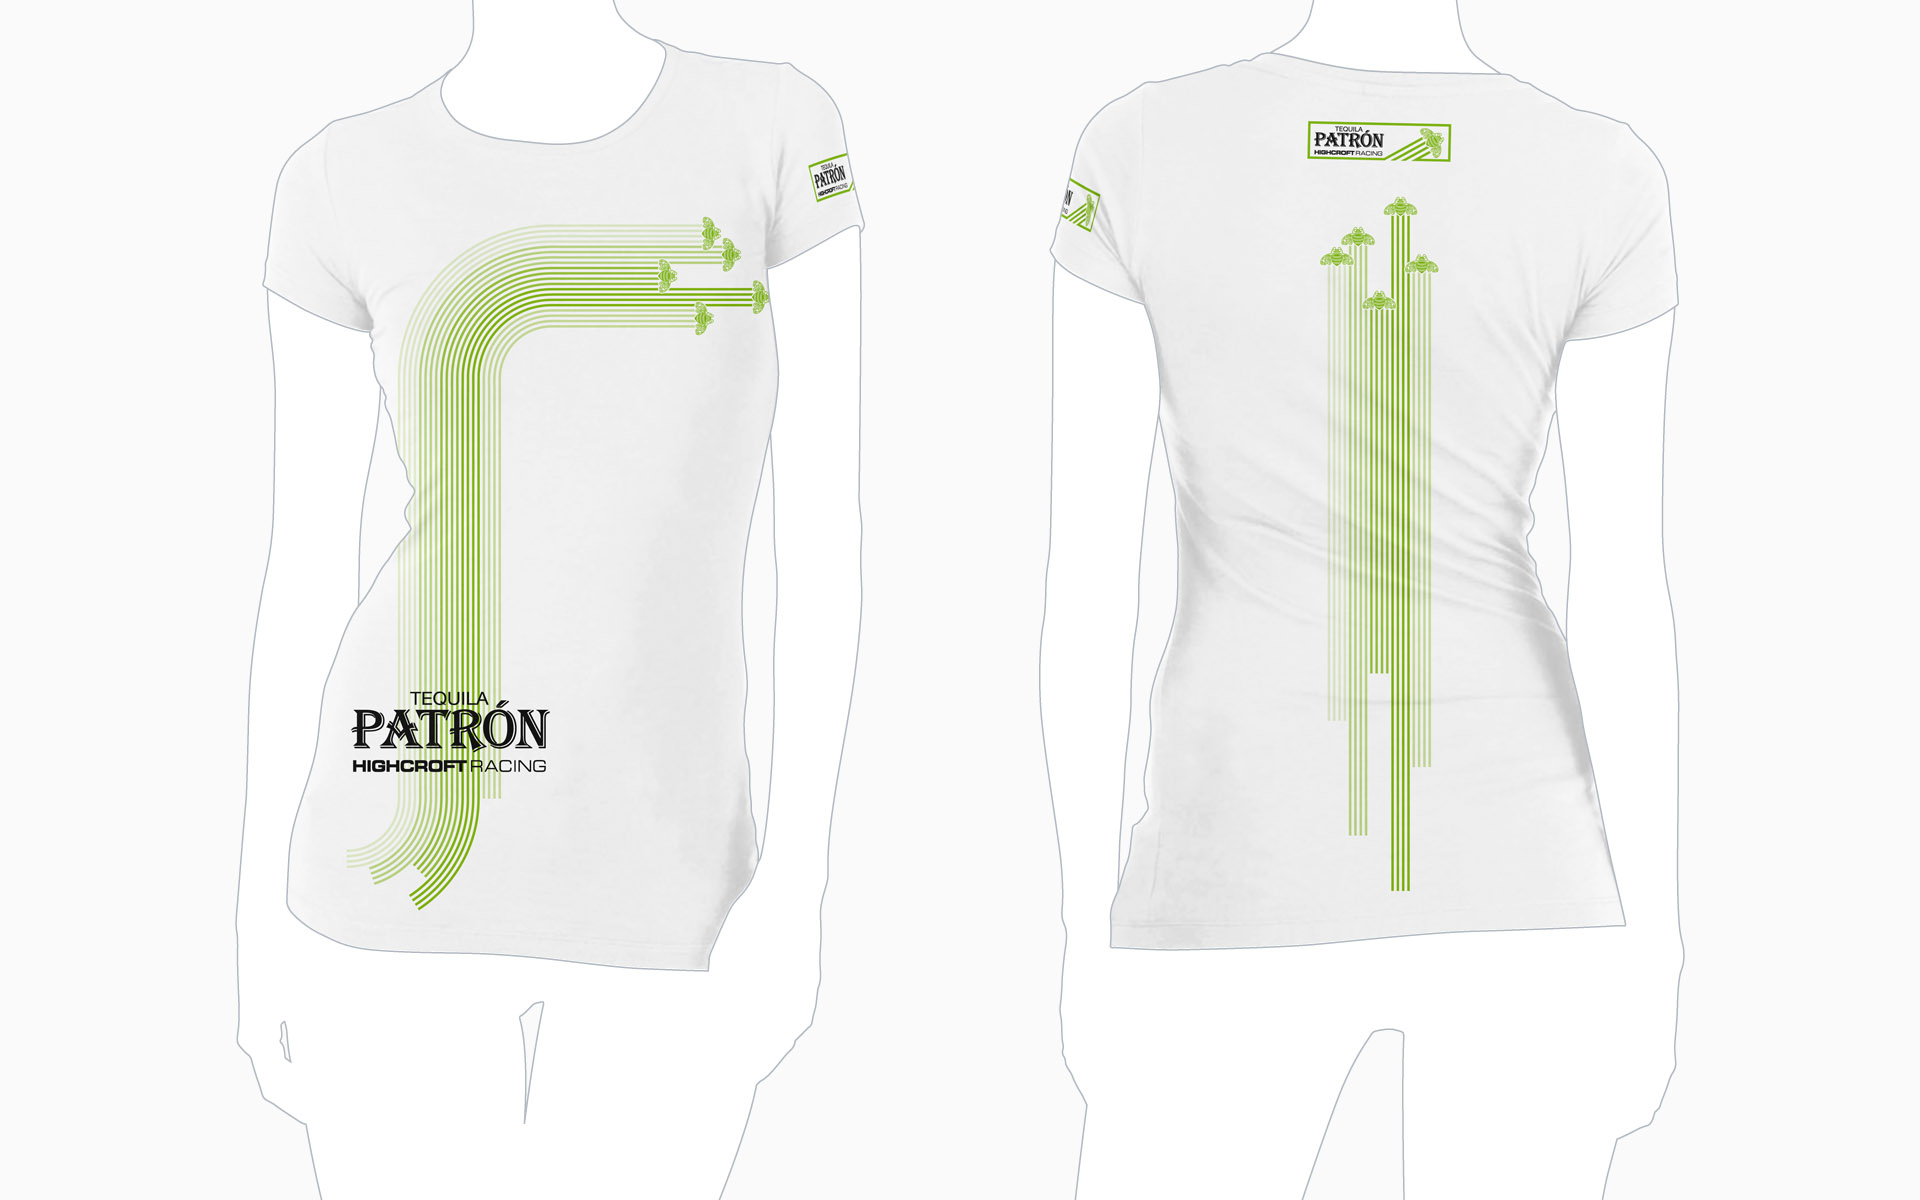 2010 Pátron Highcroft Racing T-Shirt